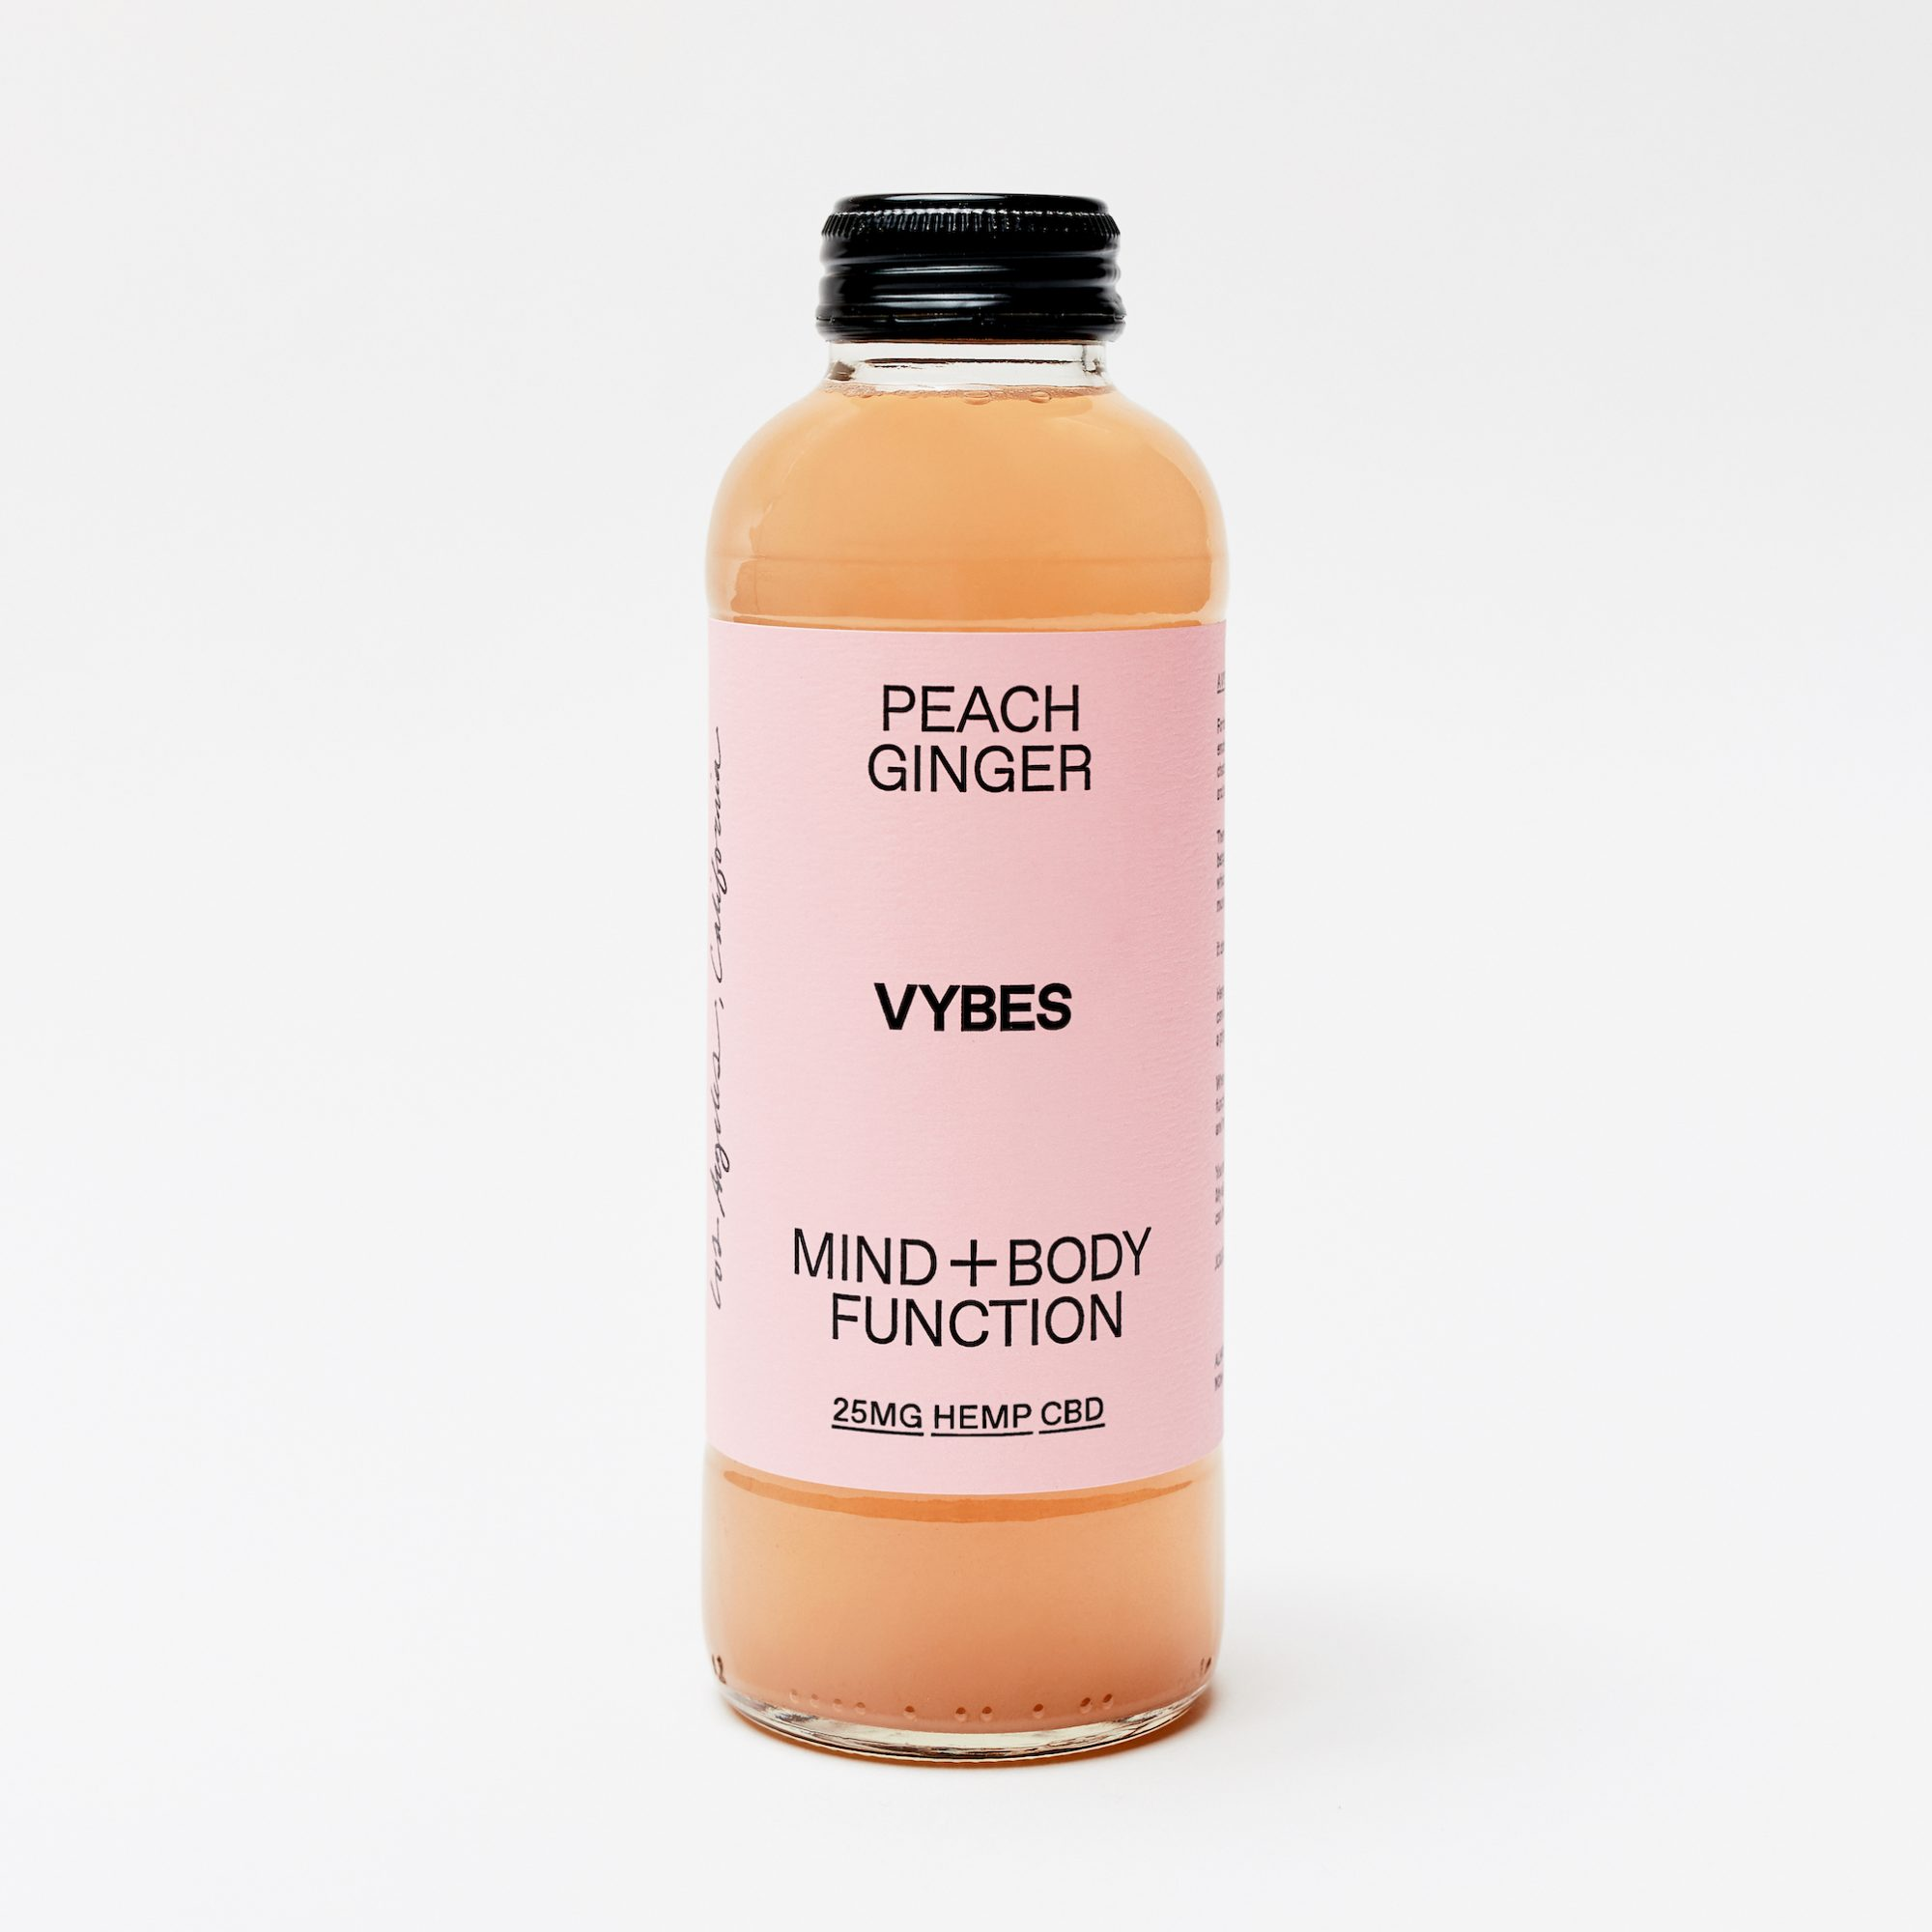 Peach Ginger VYBES - Peach Ginger (12pk)